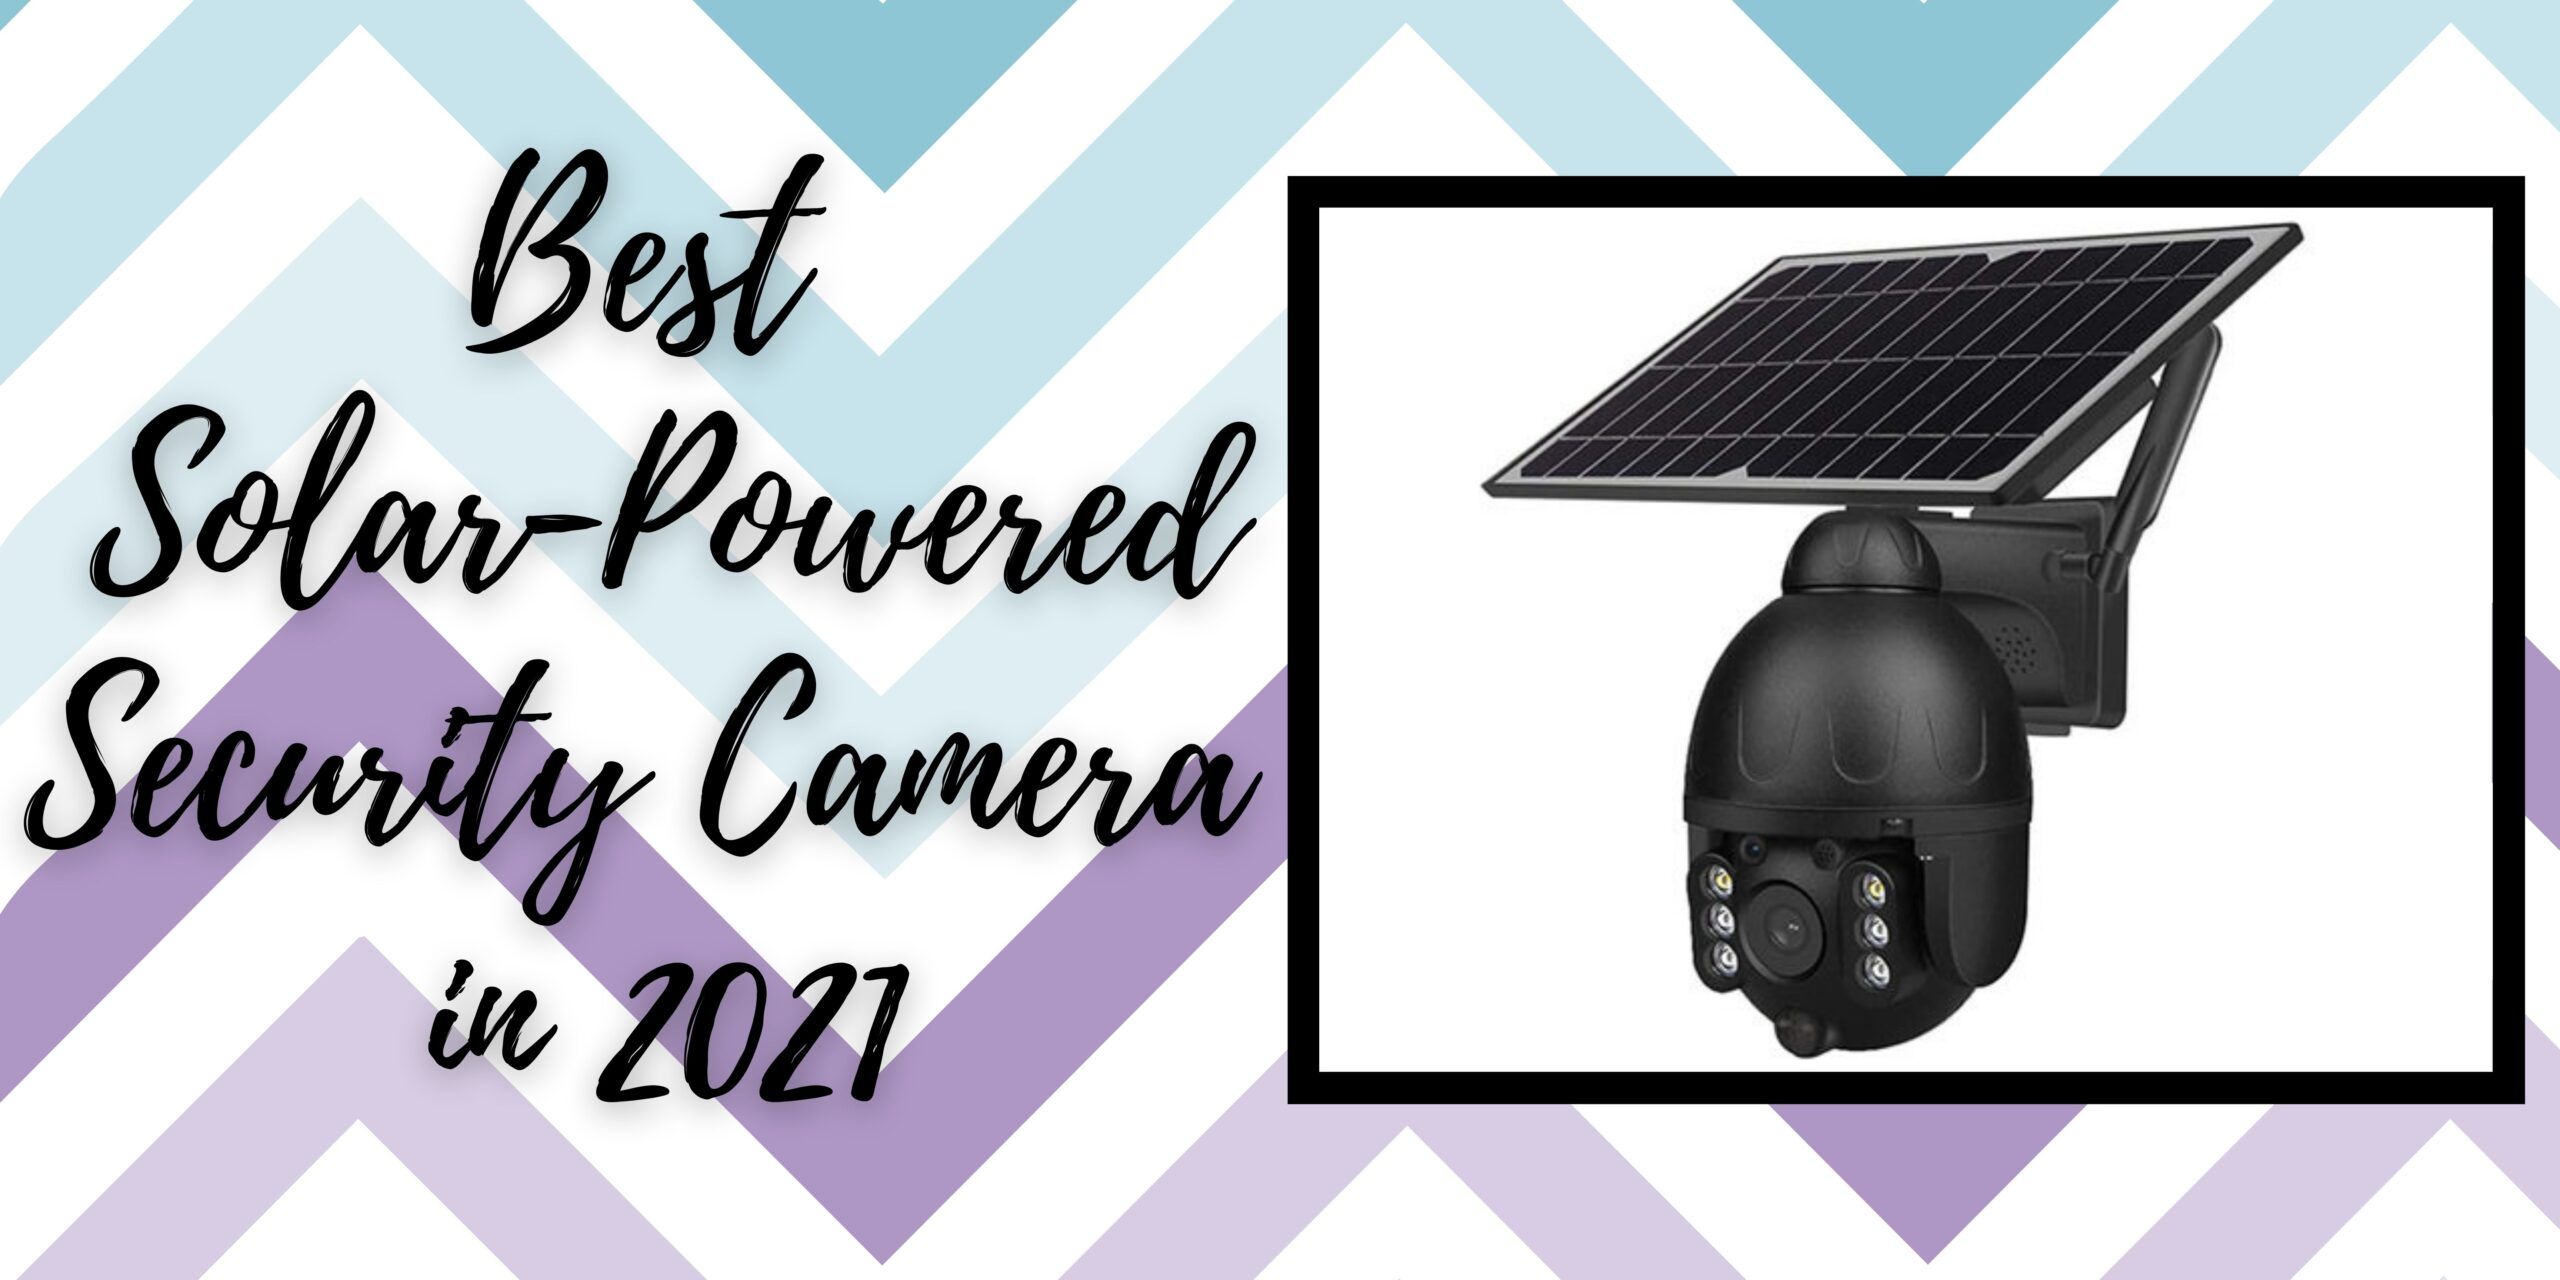 Best Solar-Powered Security Camera in 2021